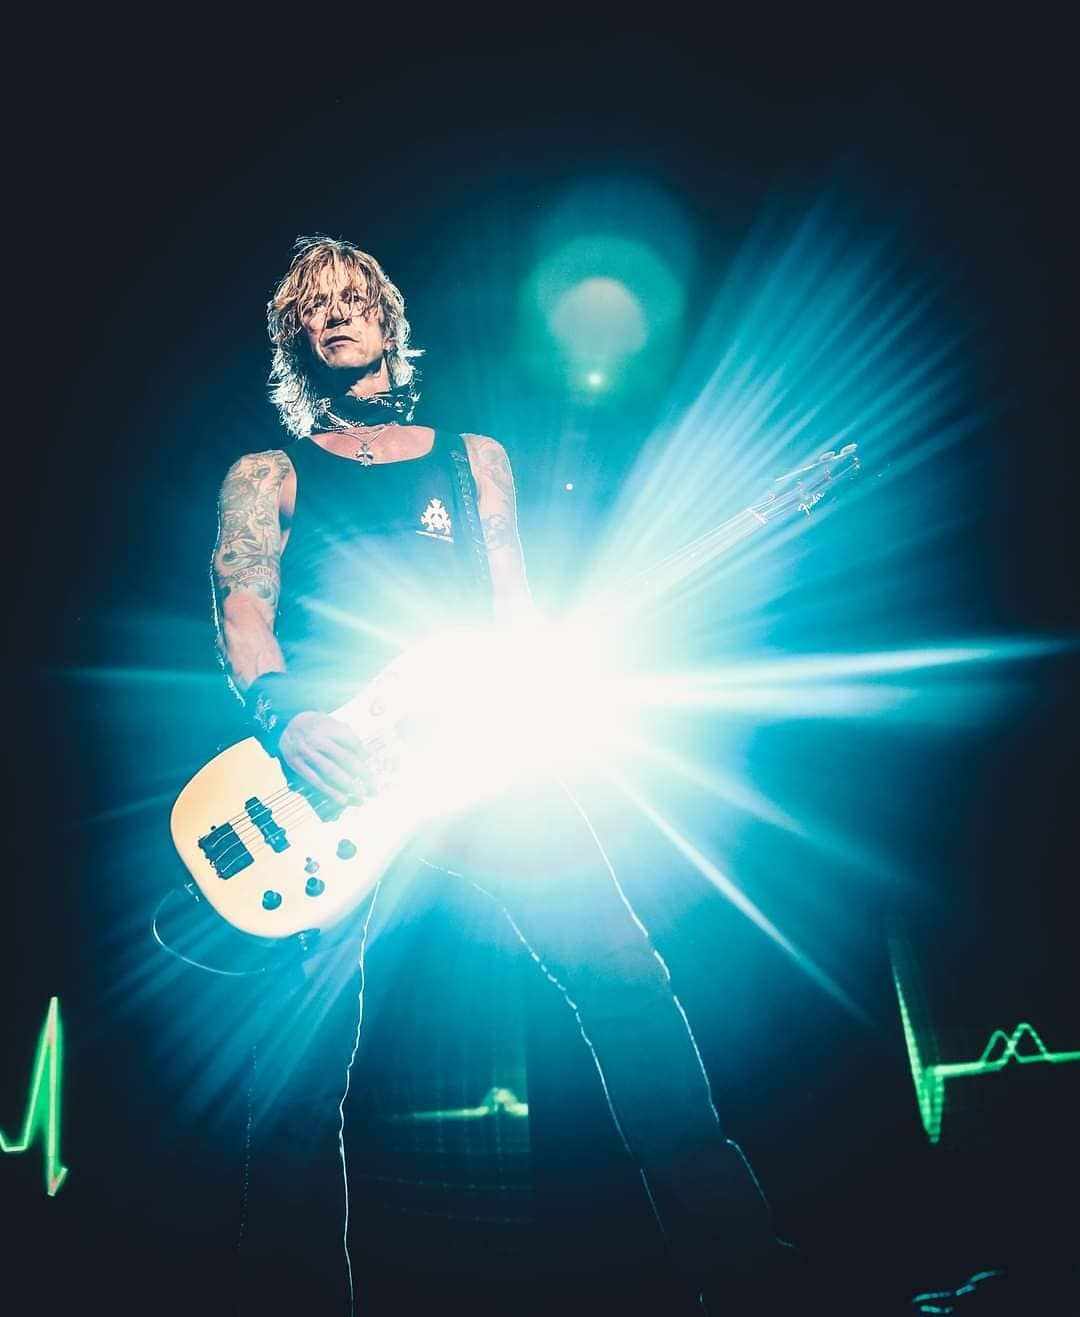 "Team Guns N' Roses on Instagram: ""Mr. Duff McKagan 🤘🏼 Boa tarde, gunners! Good afternoon! #GunsNRoses #GNR #GnFnR #DuffMcKagan #NotInThisLifetime #NotInThisLifetimeTour…"""